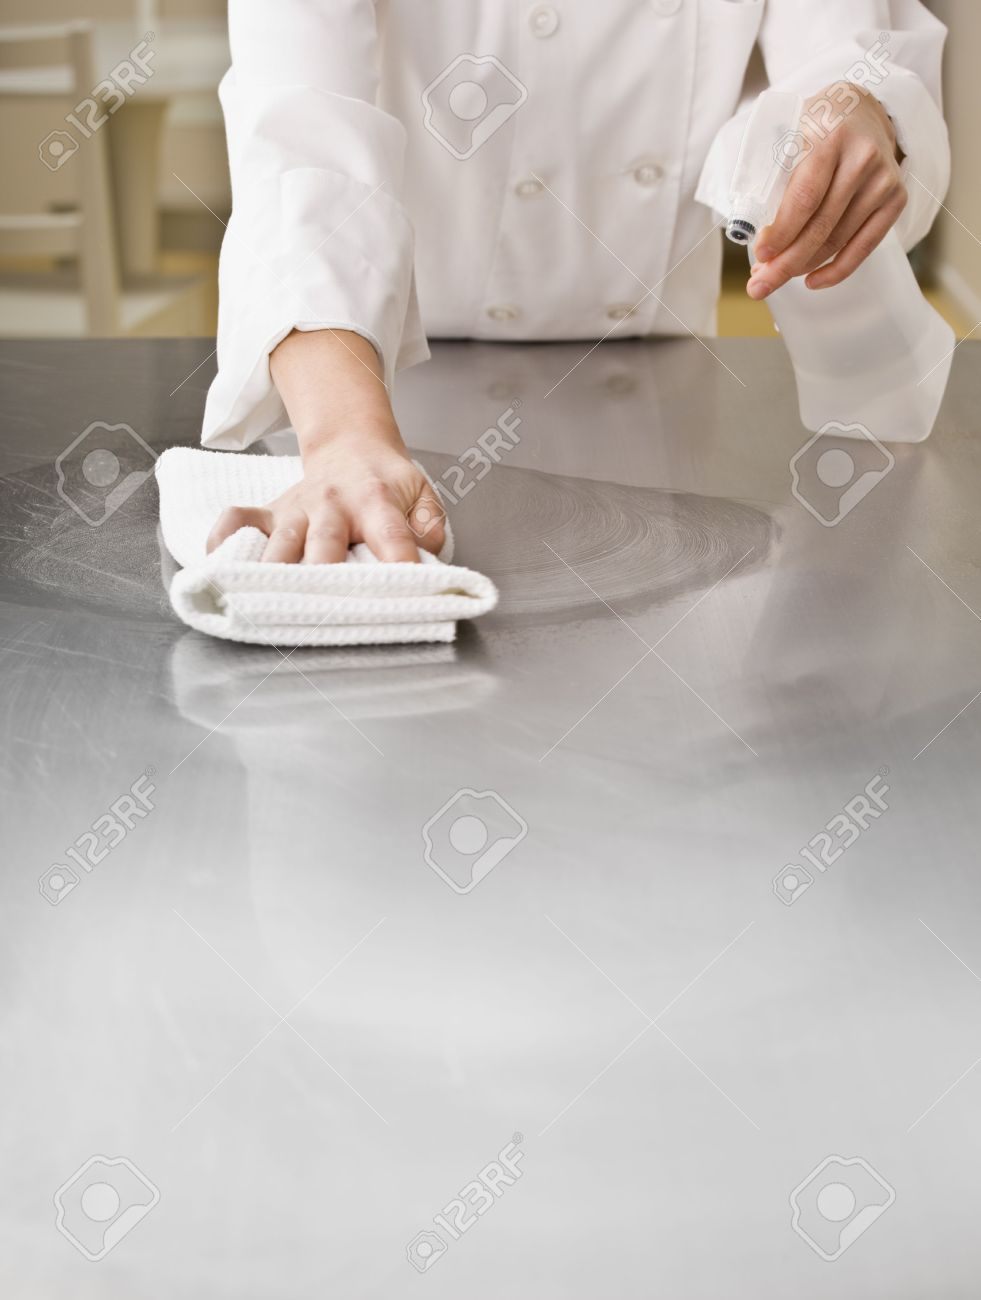 A Chef Is Cleaning A Counter In A Professional Kitchen With A ...